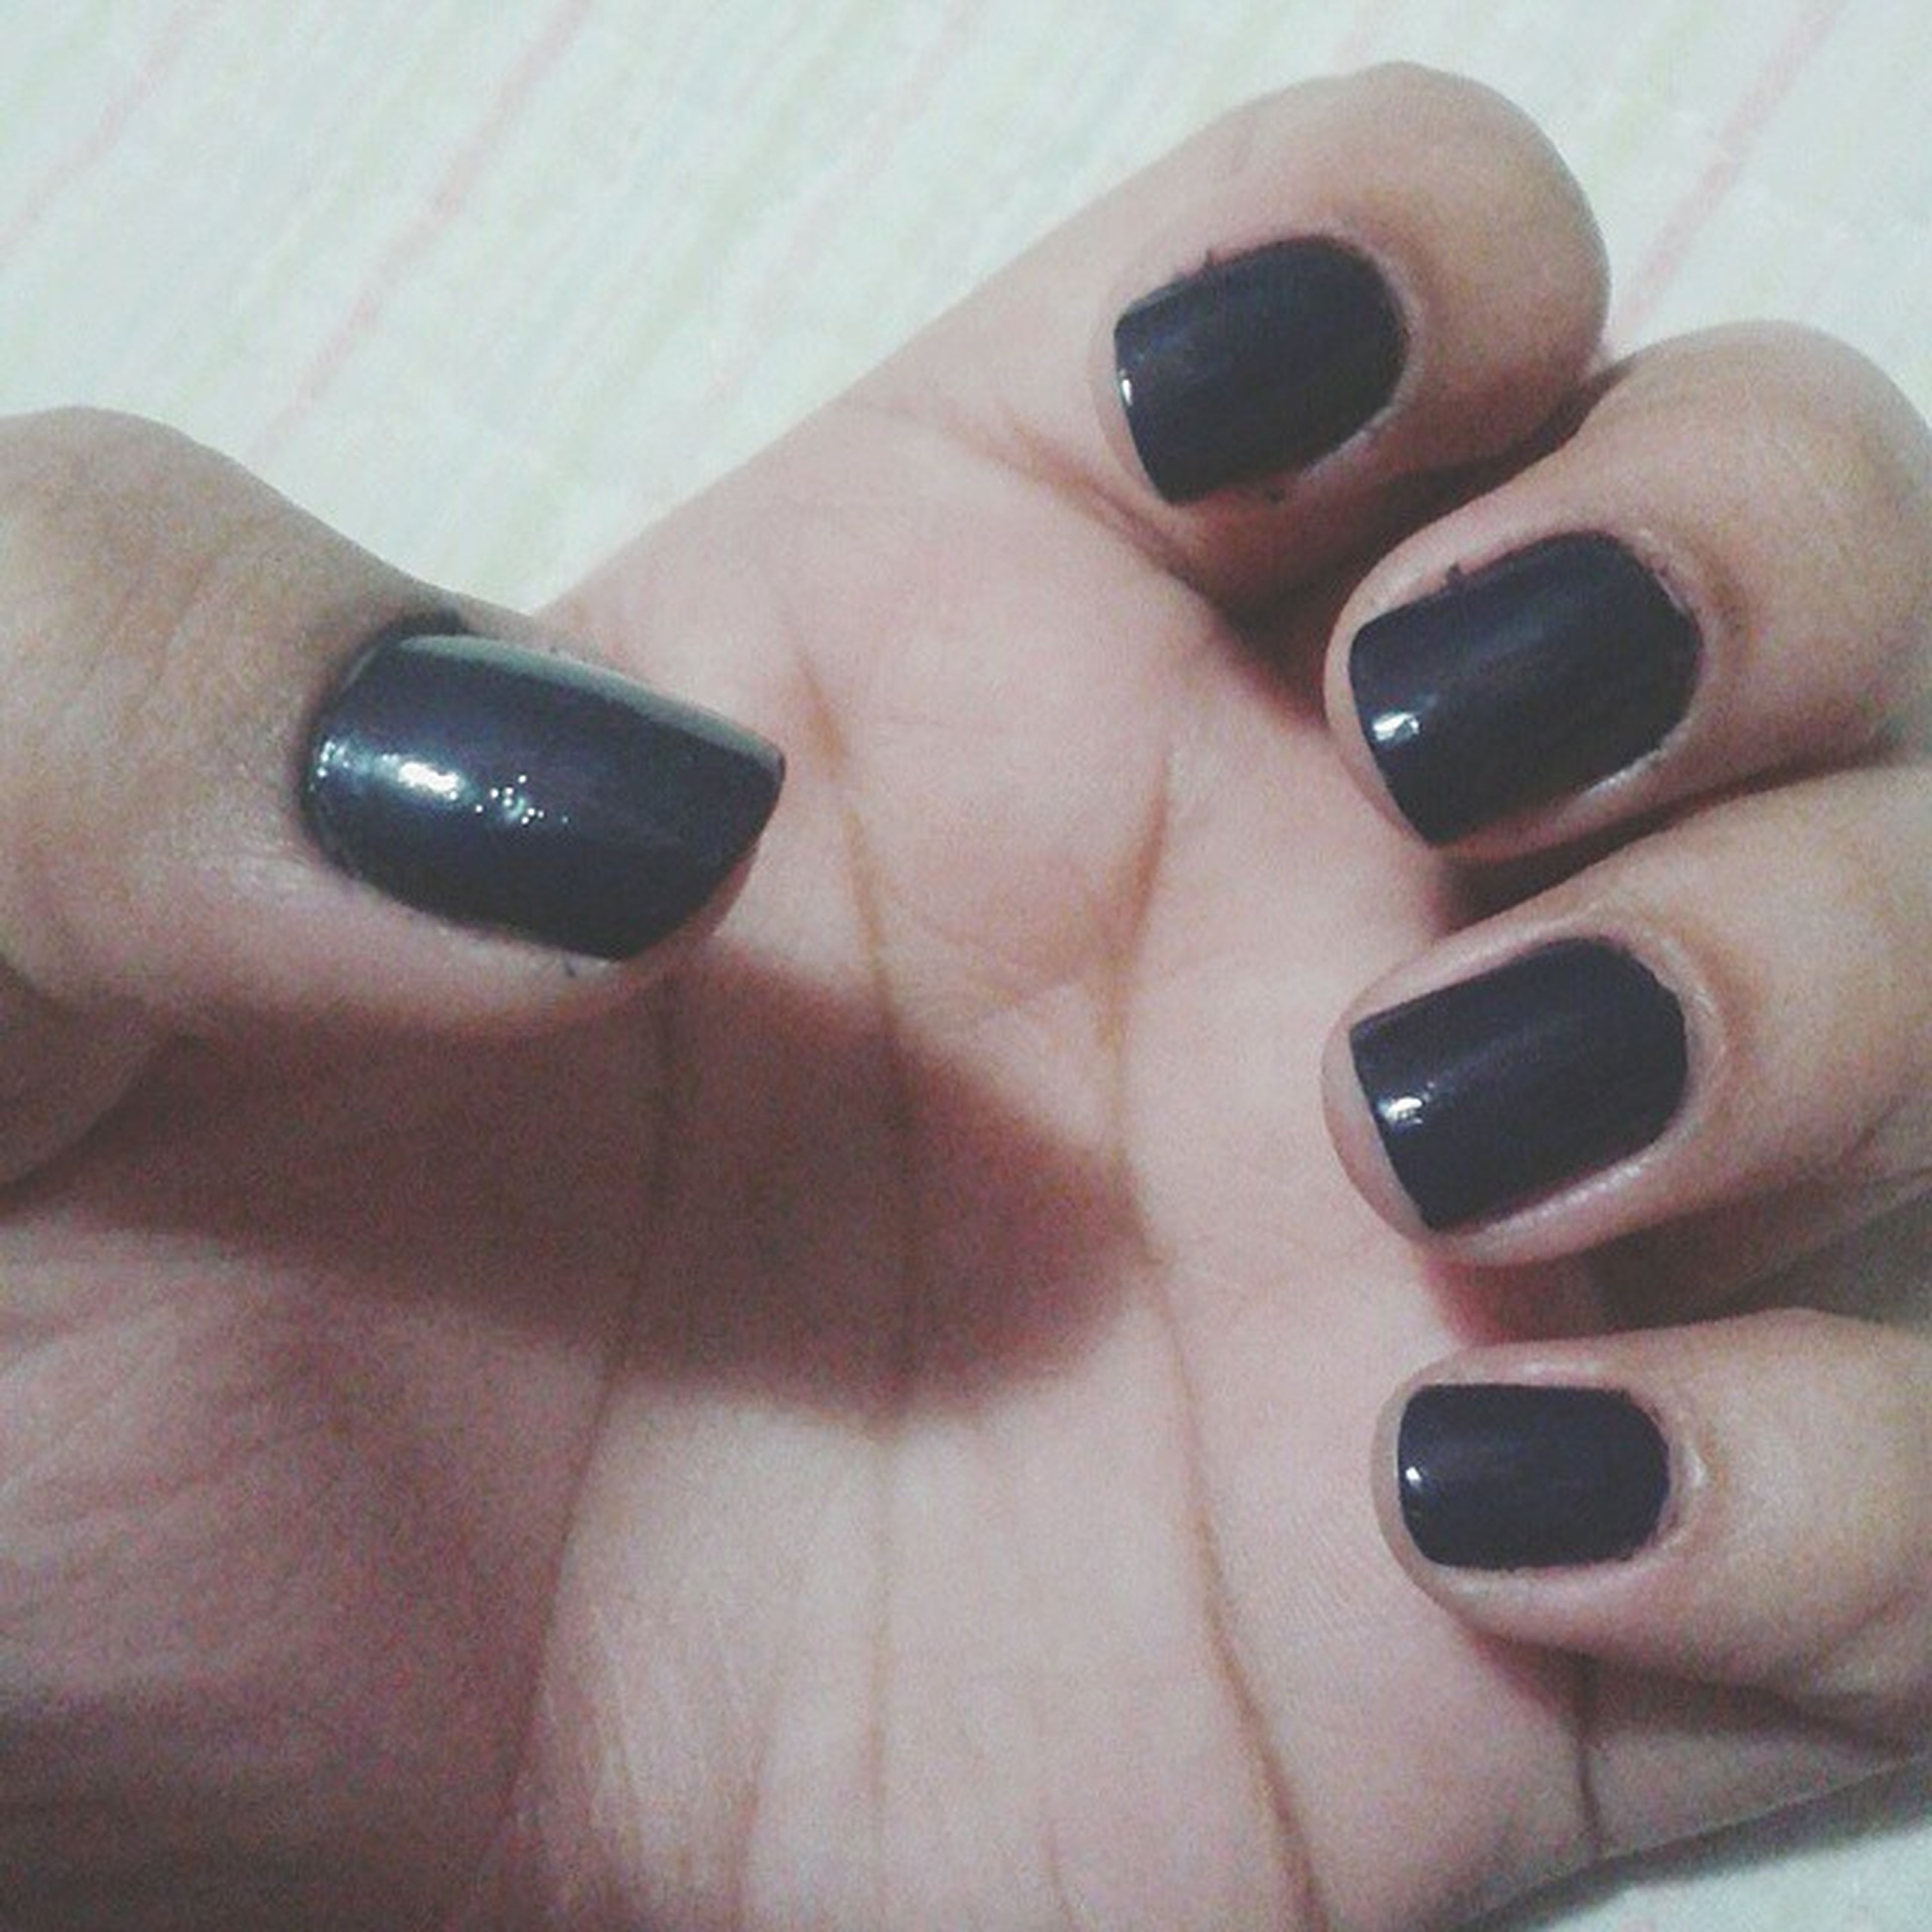 person, part of, human finger, indoors, holding, cropped, close-up, unrecognizable person, personal perspective, ring, nail polish, lifestyles, high angle view, leisure activity, palm, fashion